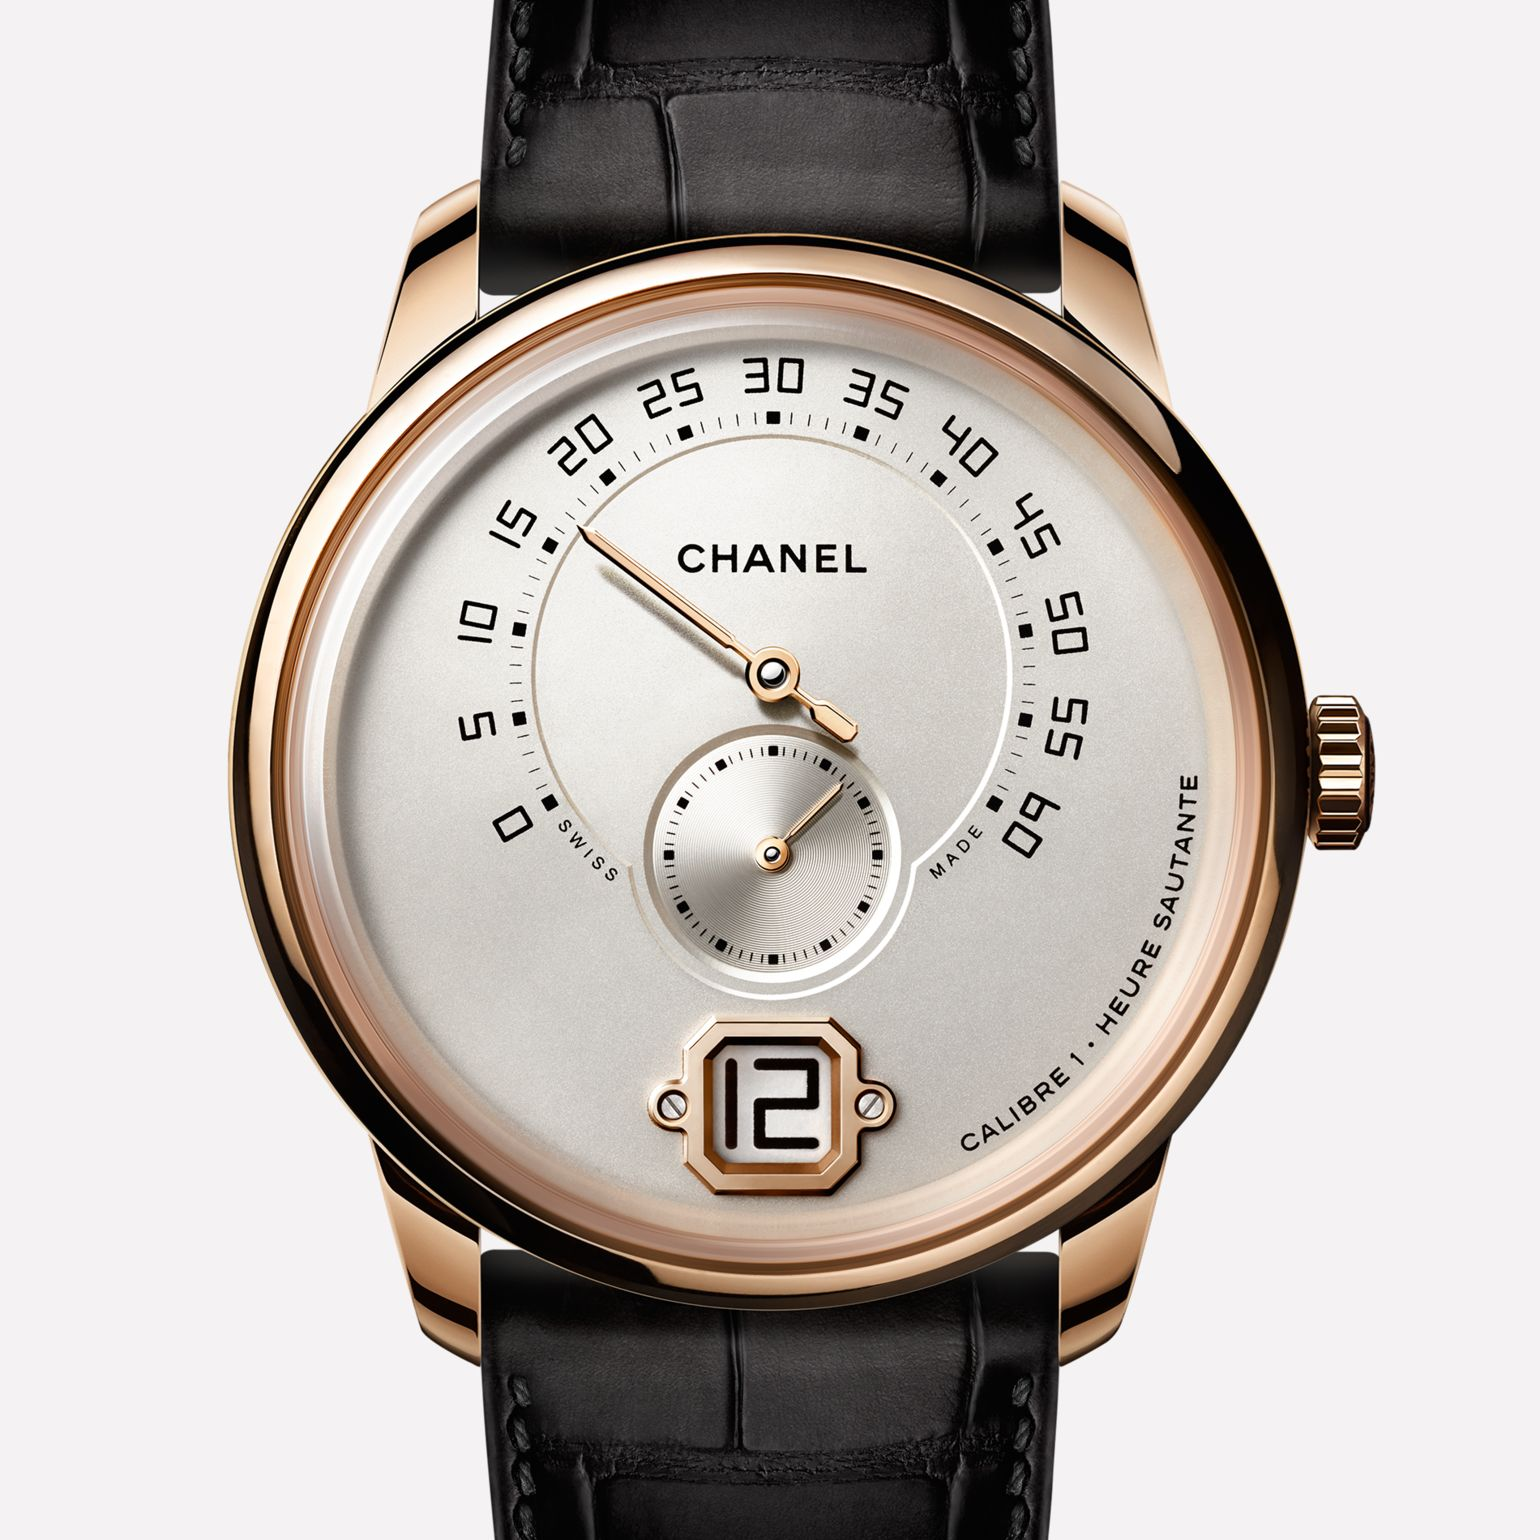 Monsieur de CHANEL BEIGE GOLD, ivory dial with jumping hour, 240° retrograde minutes and small second counter